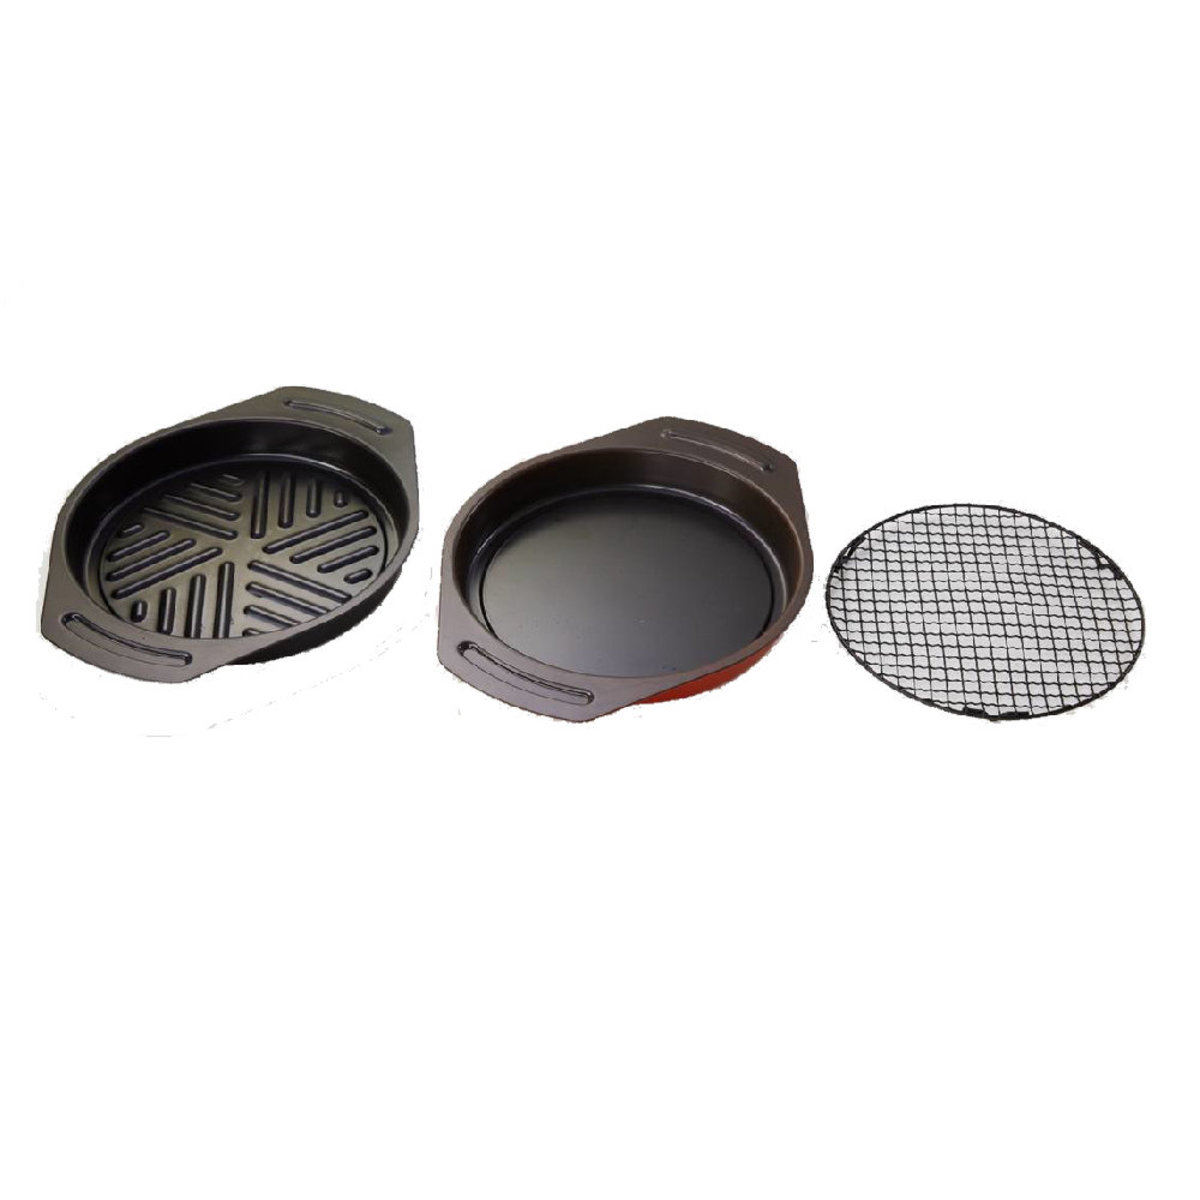 AET-P-DOUBLEPAN Double Grill Pan Accessories